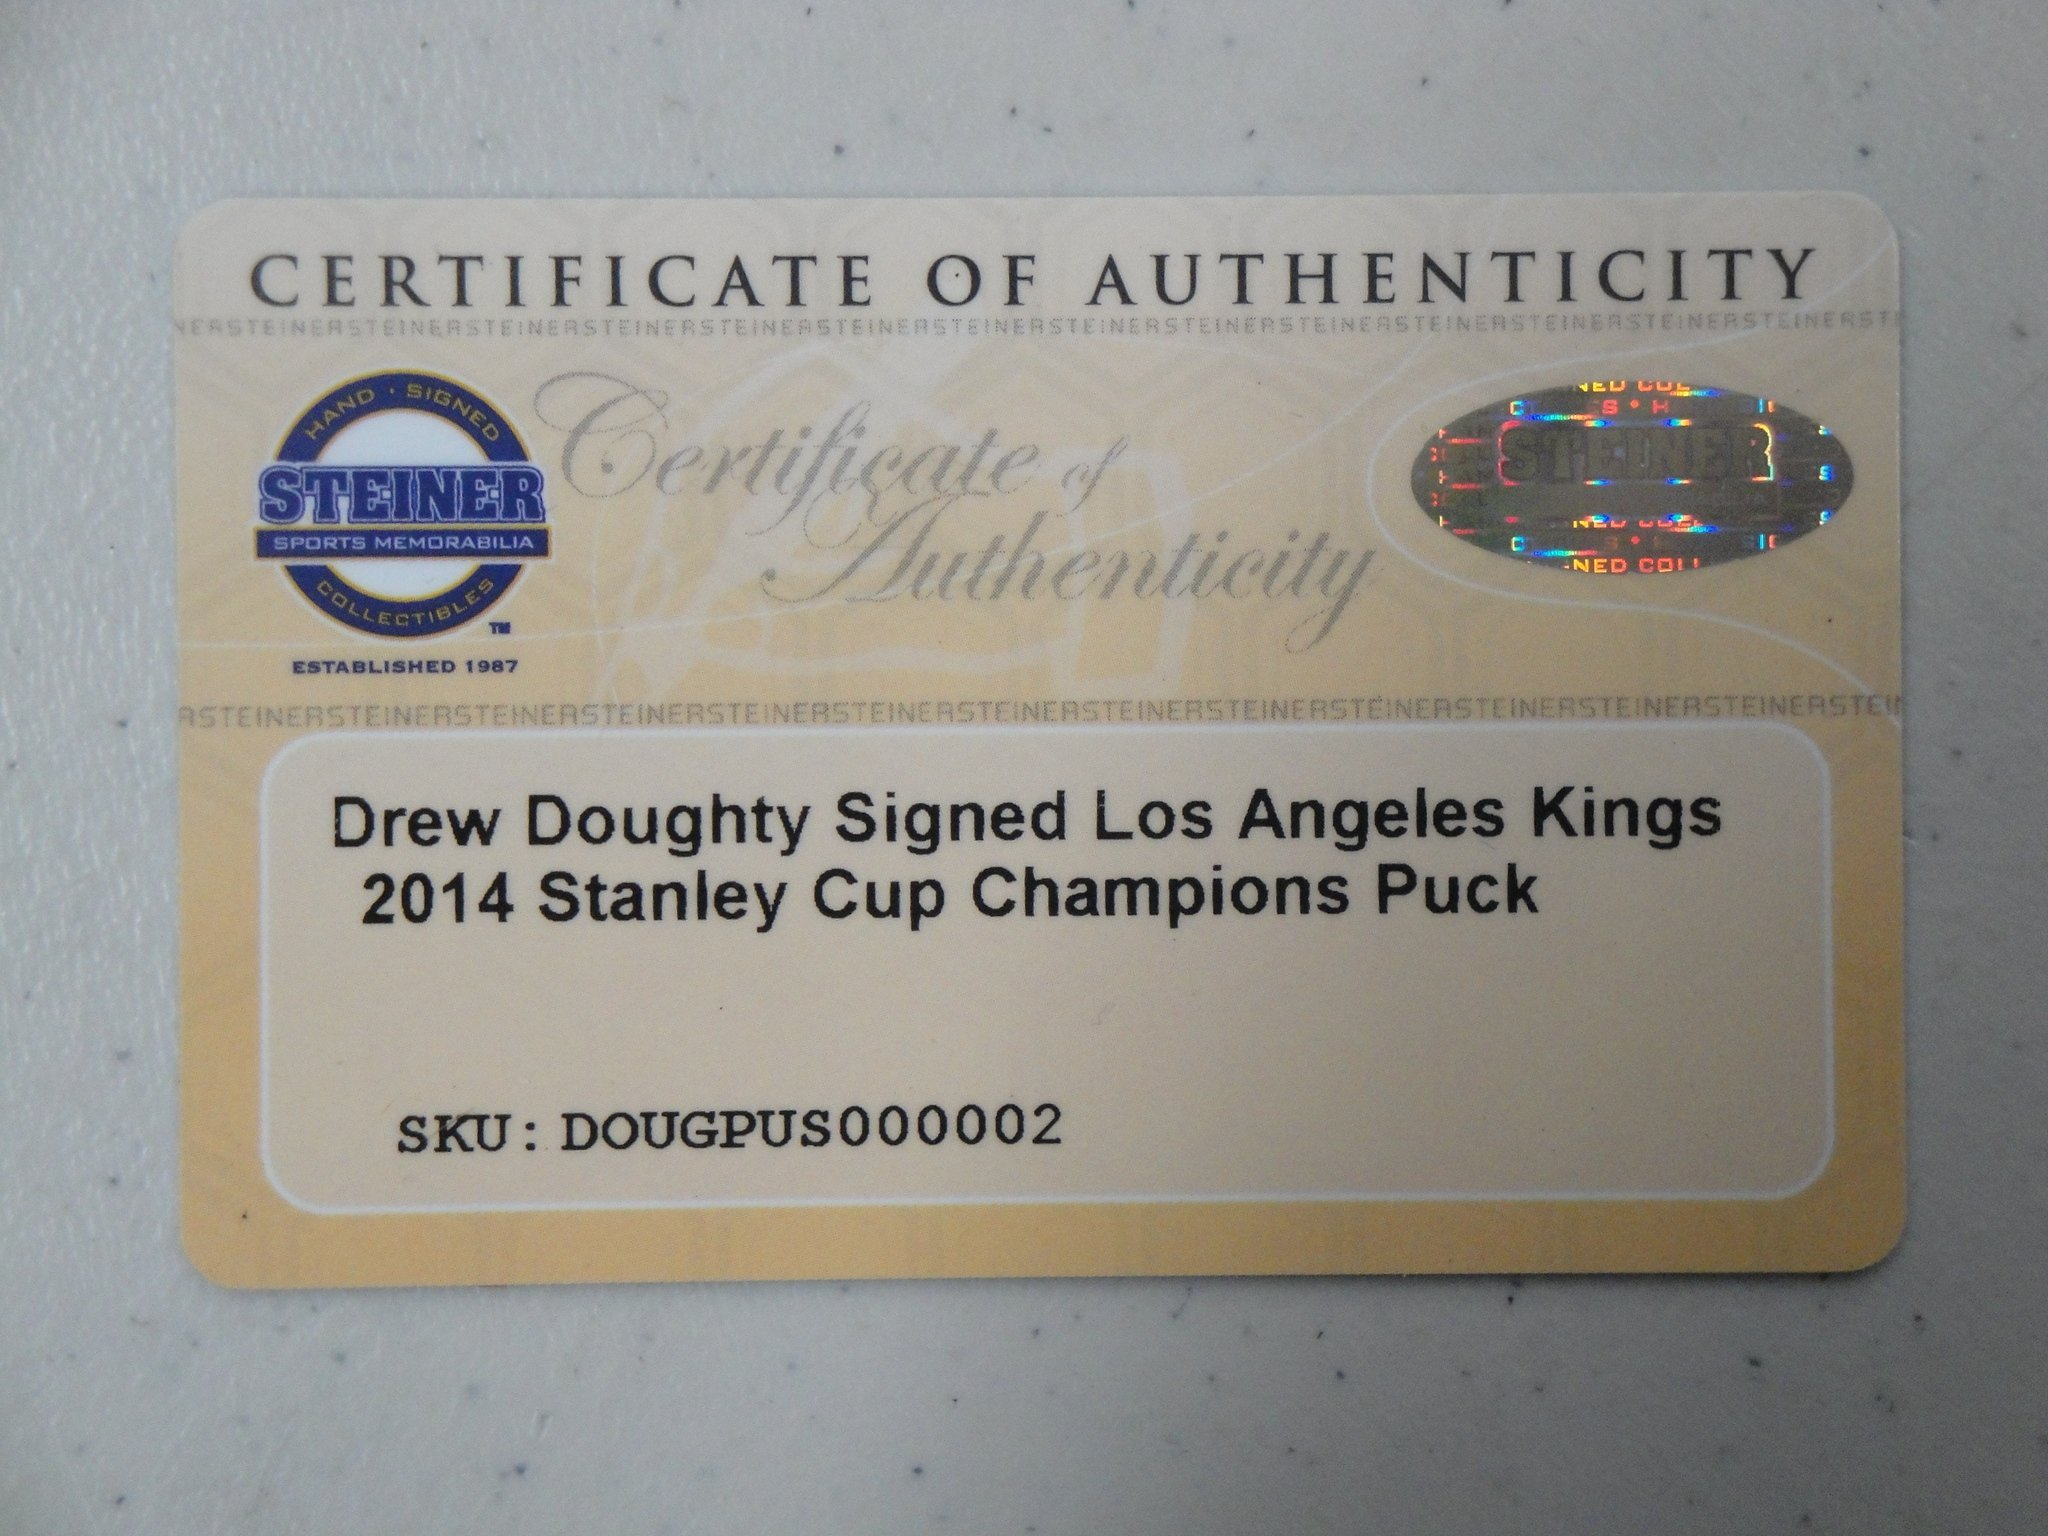 Drew Doughty Signed Autographed LA Kings Puck 2014 Stanley Cup Champions Steiner